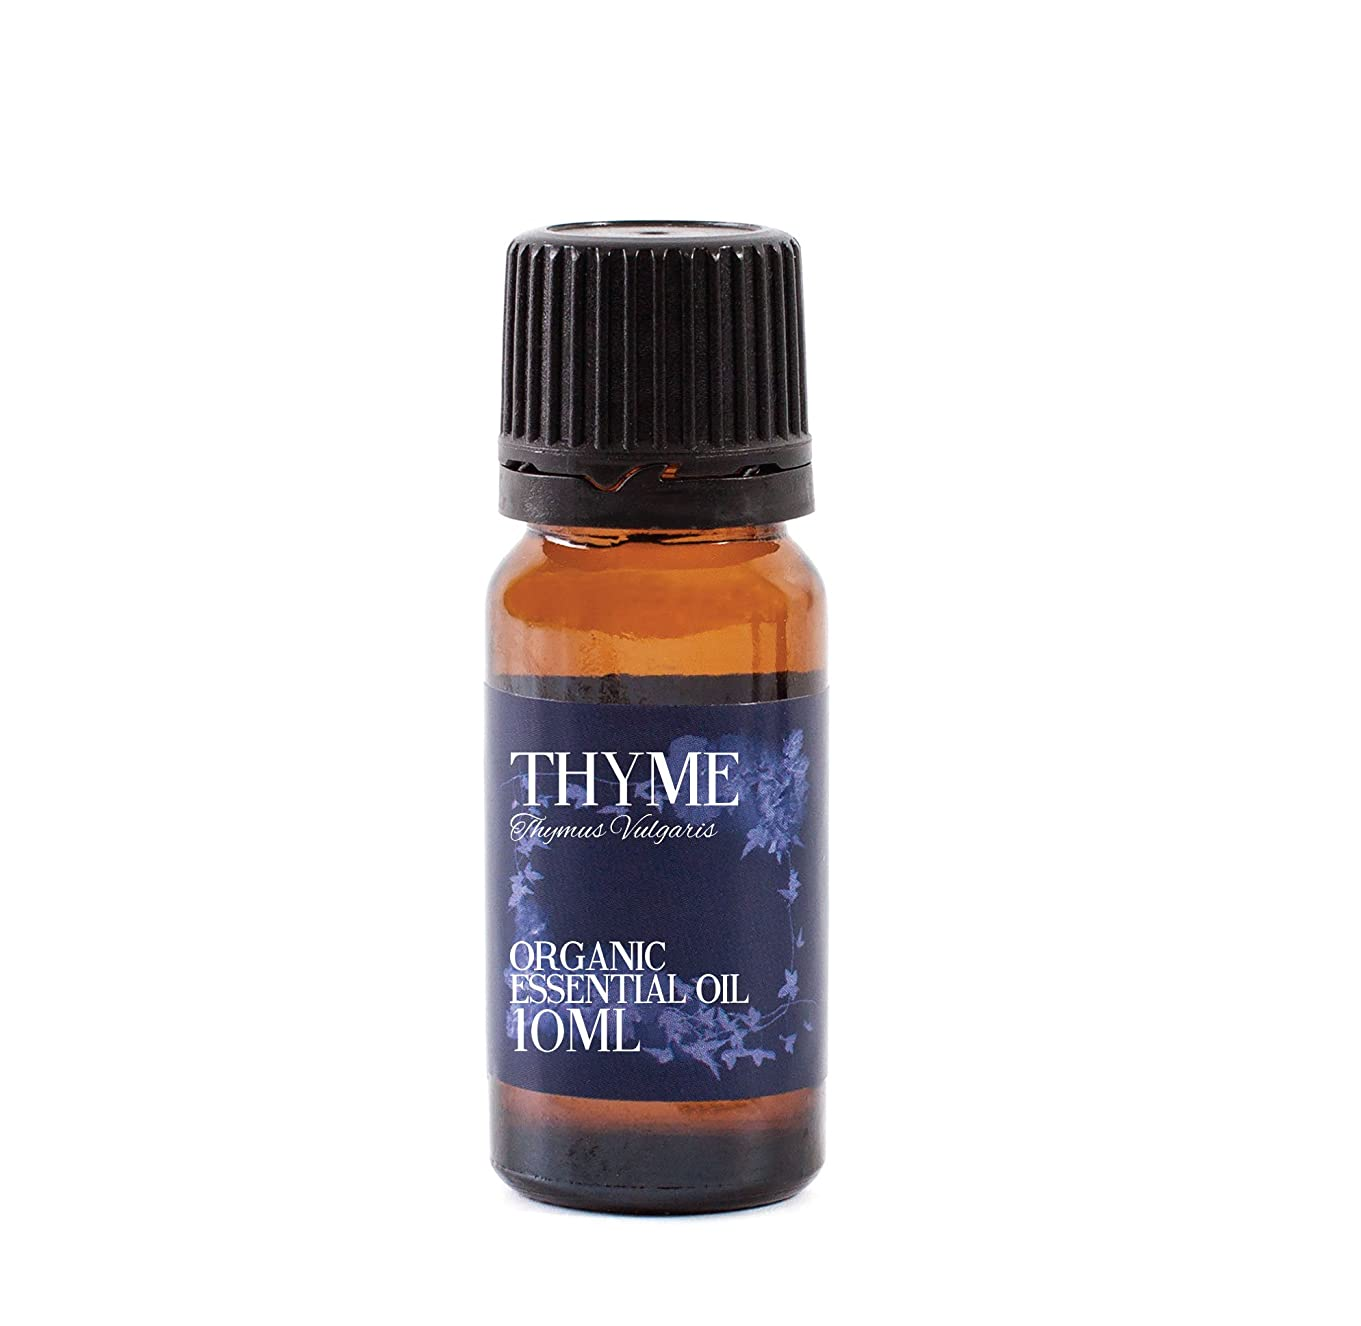 バット混乱マウントMystic Moments | Thyme Organic Essential Oil - 10ml - 100% Pure